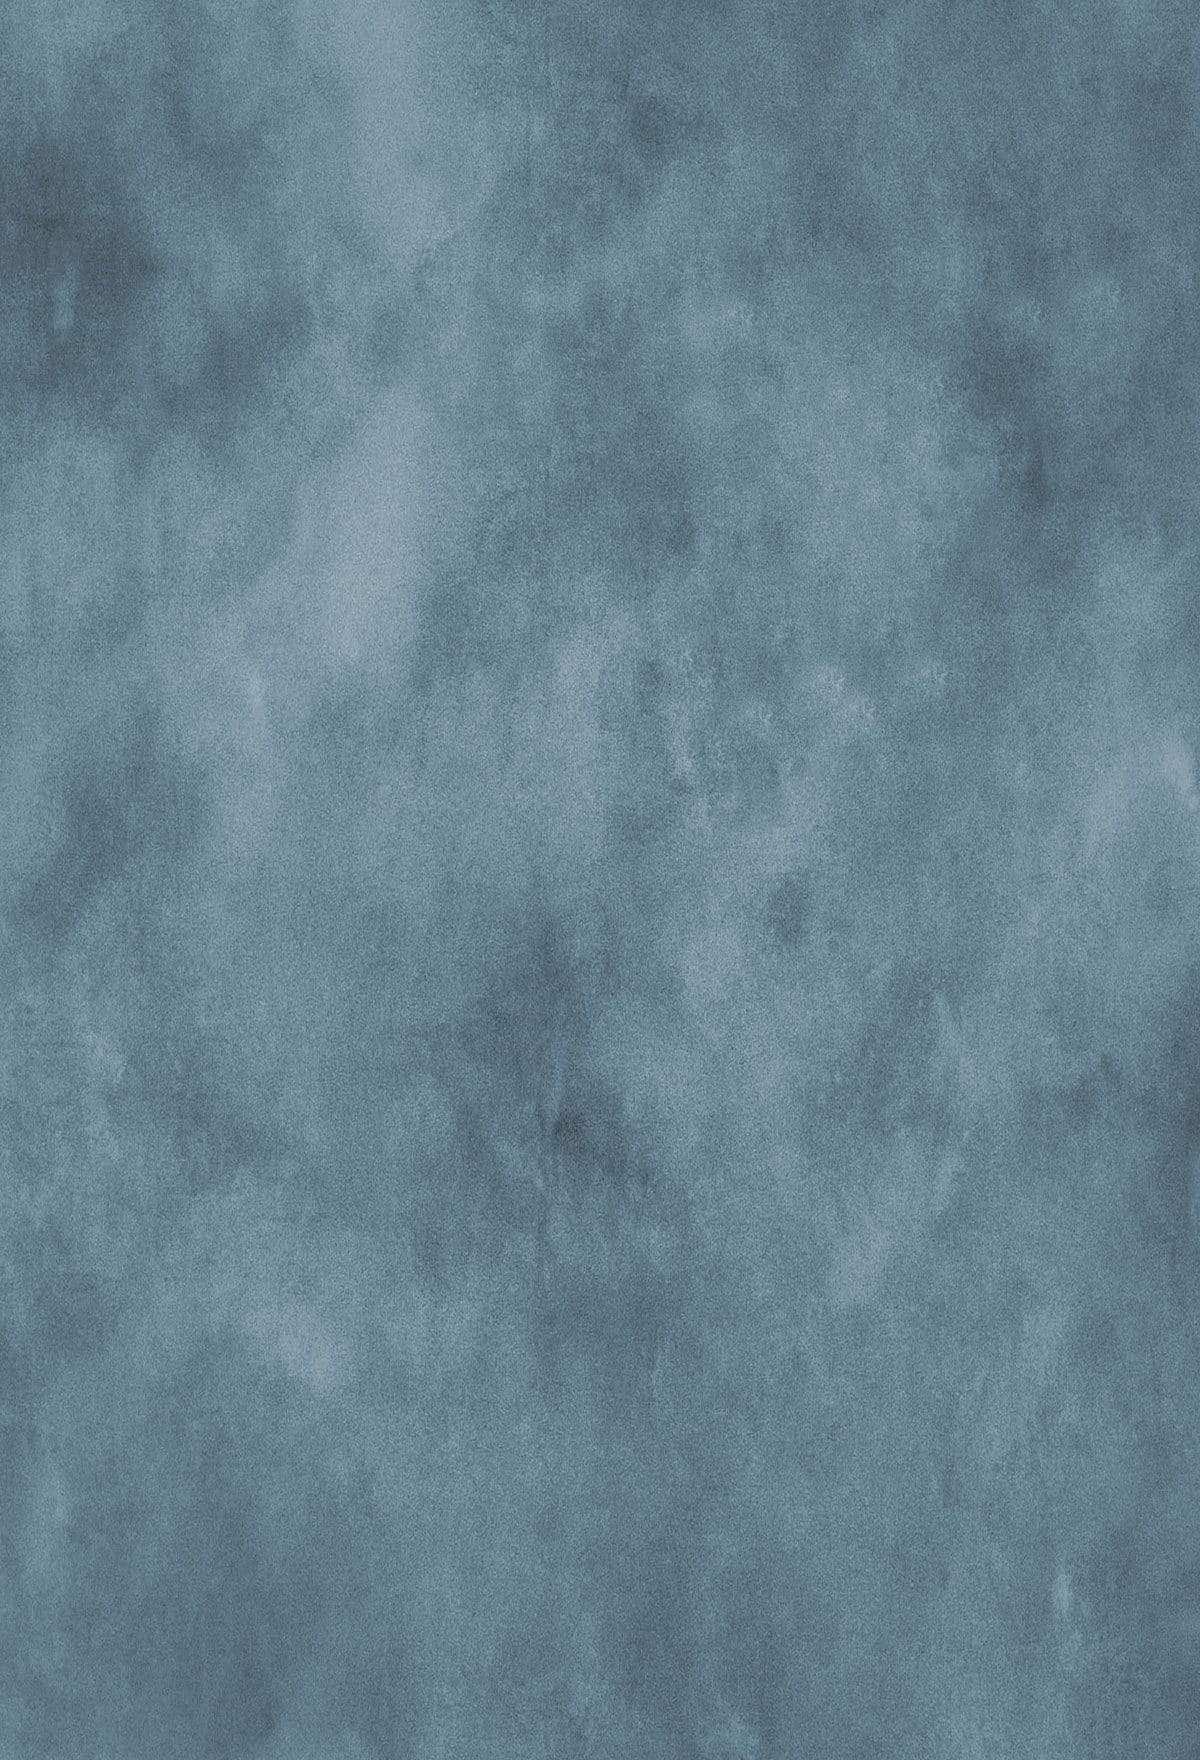 Load image into Gallery viewer, Katebackdrop£ºKate Gray Light Blue Abstract Texture Senior Portrait Backdrop